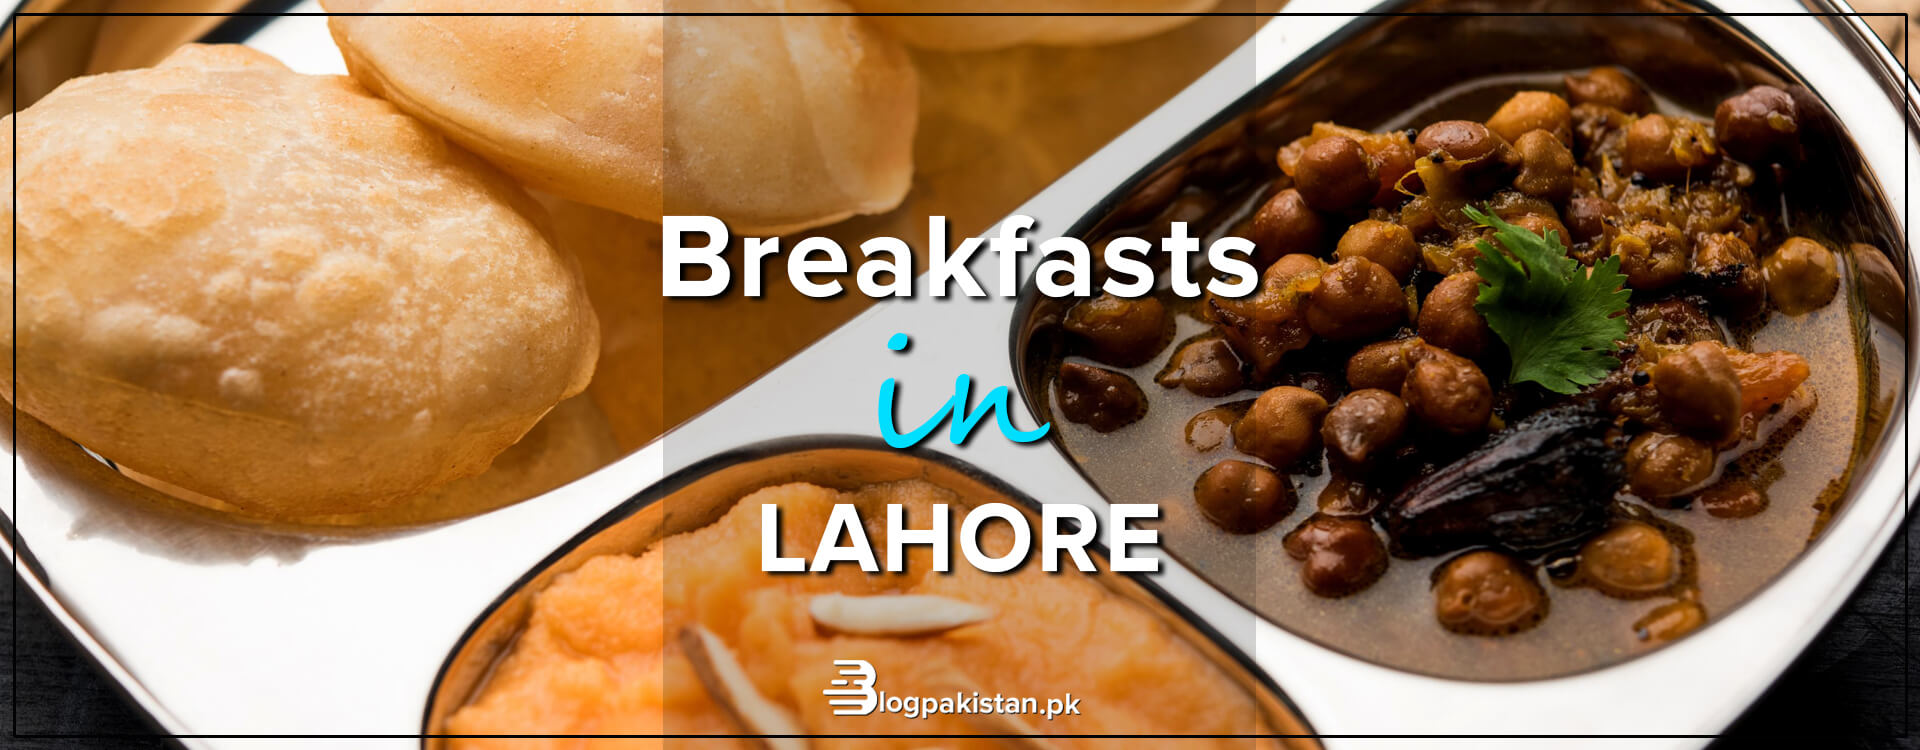 10 Must-Visit Cafes for Breakfasts in Lahore